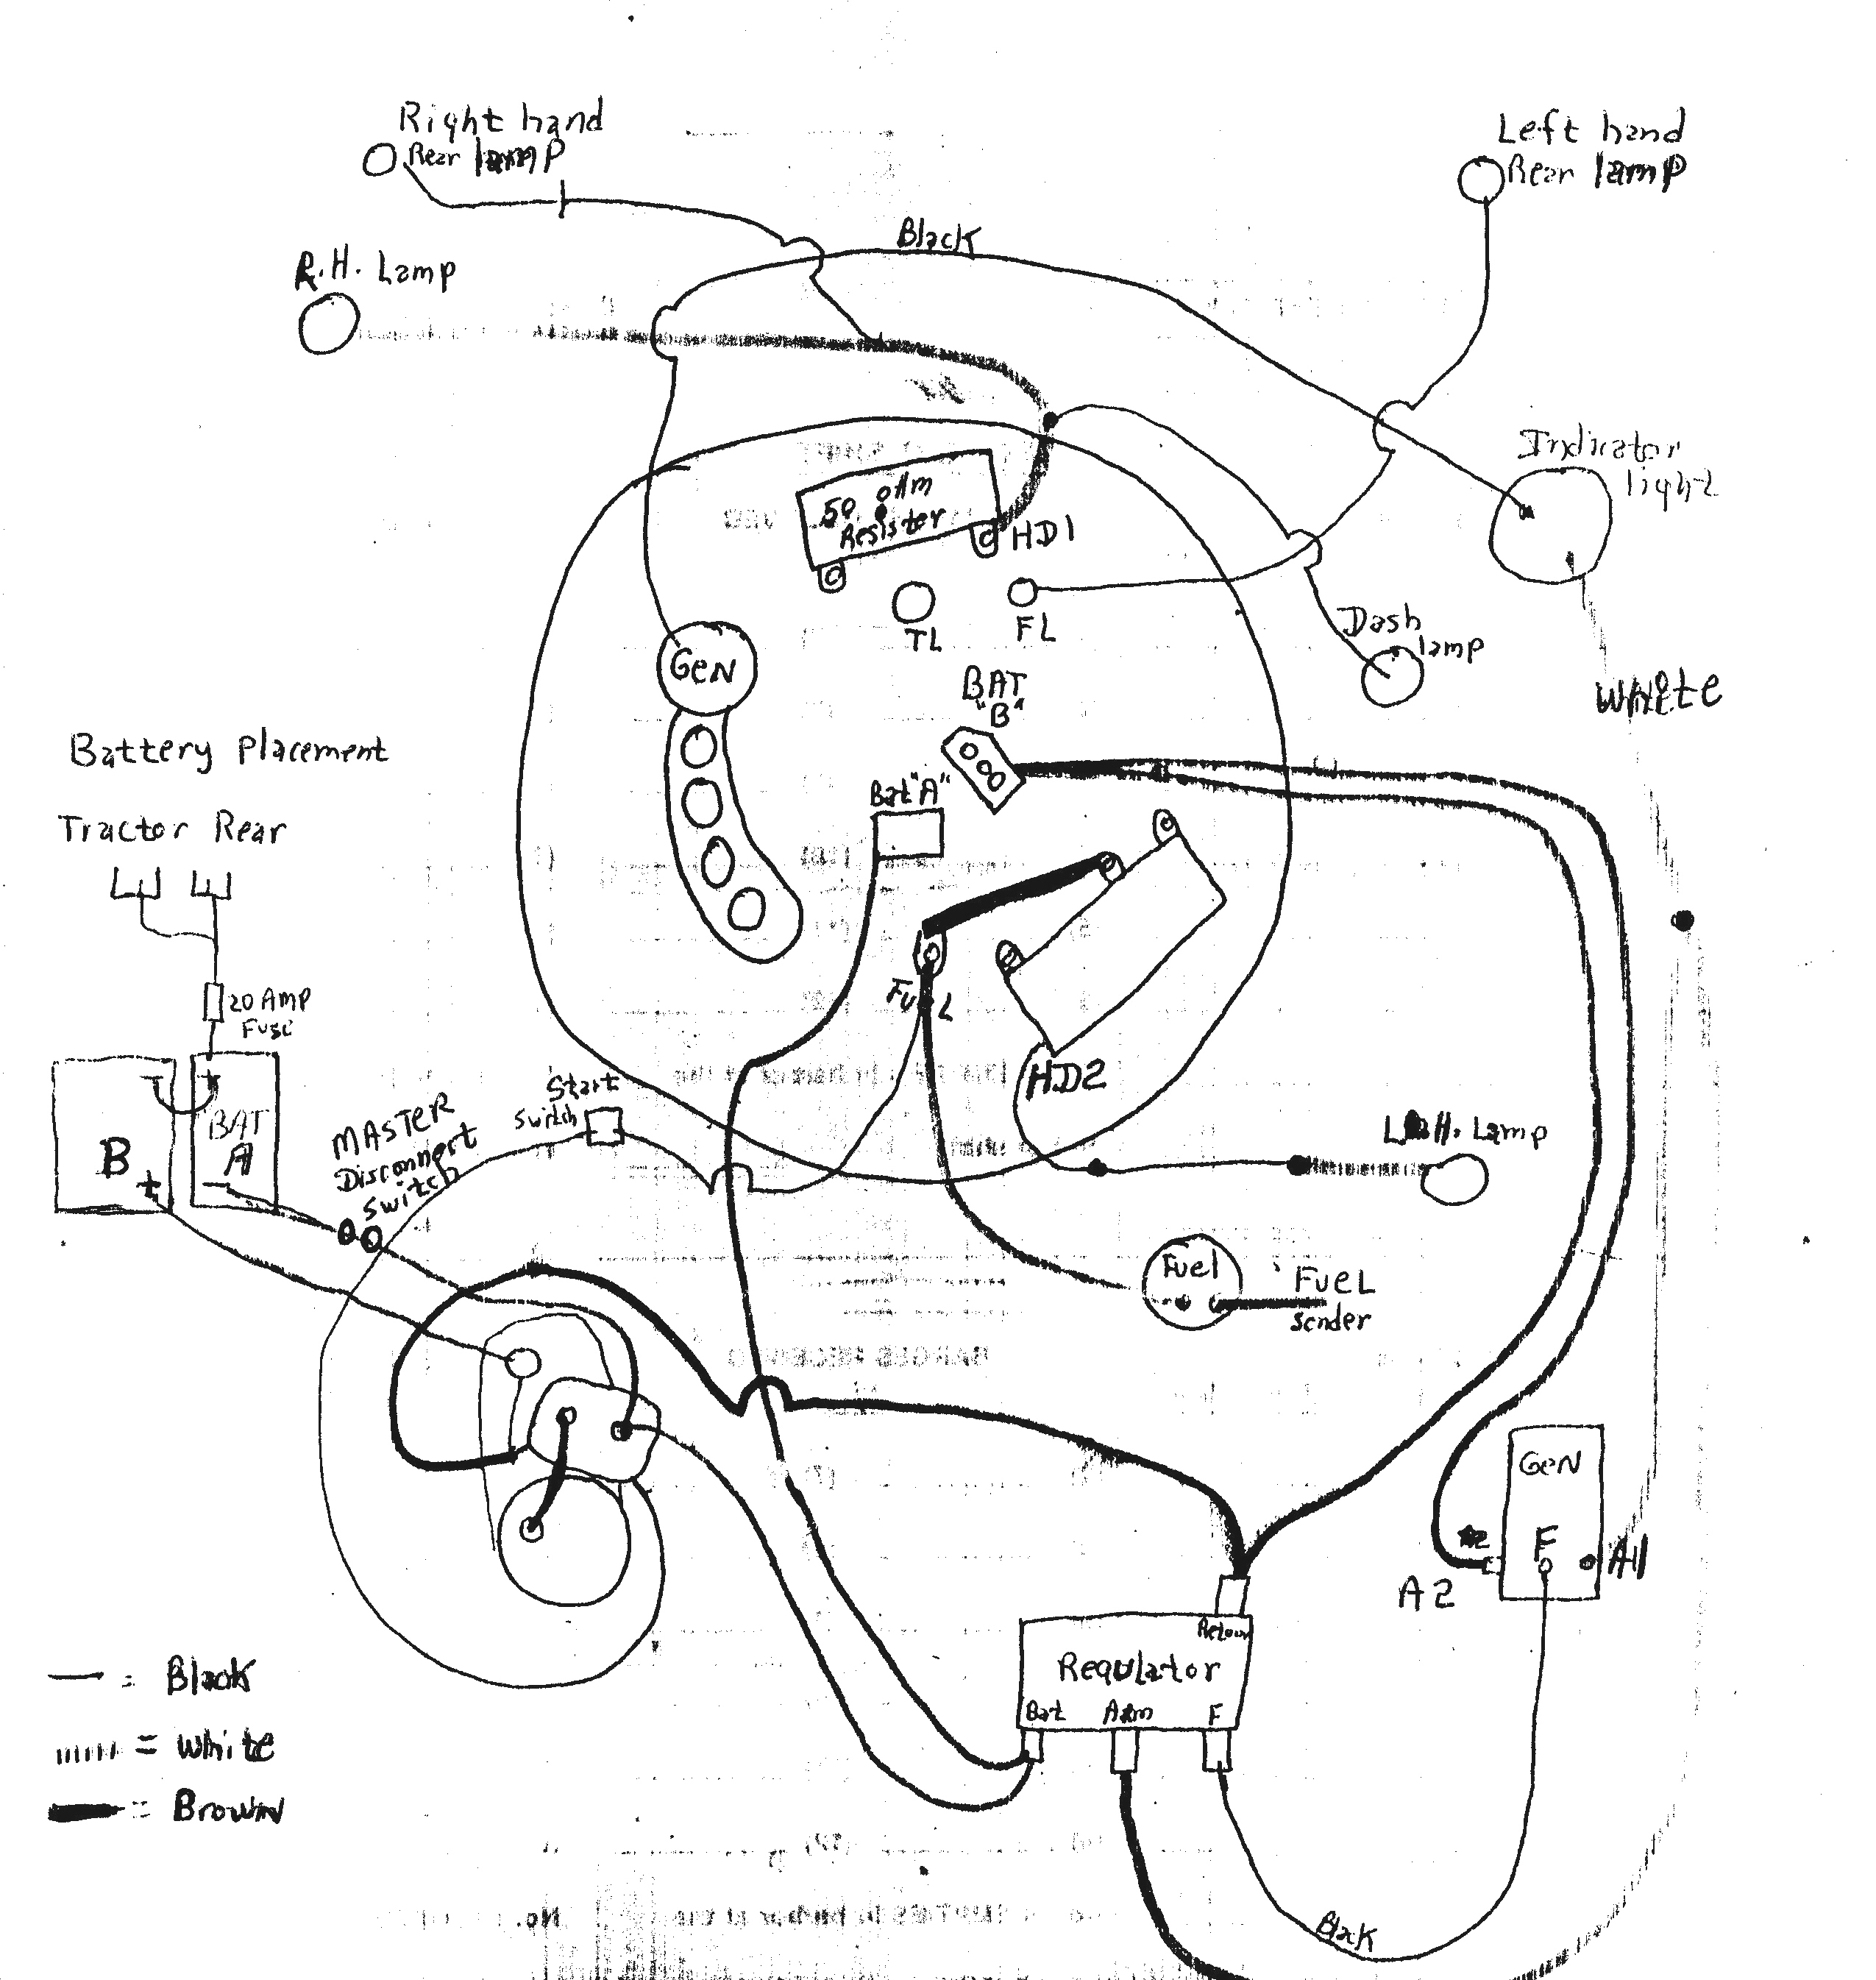 Wiring Harness Schematic 5 7 Vortec Wiring Harness Diagram